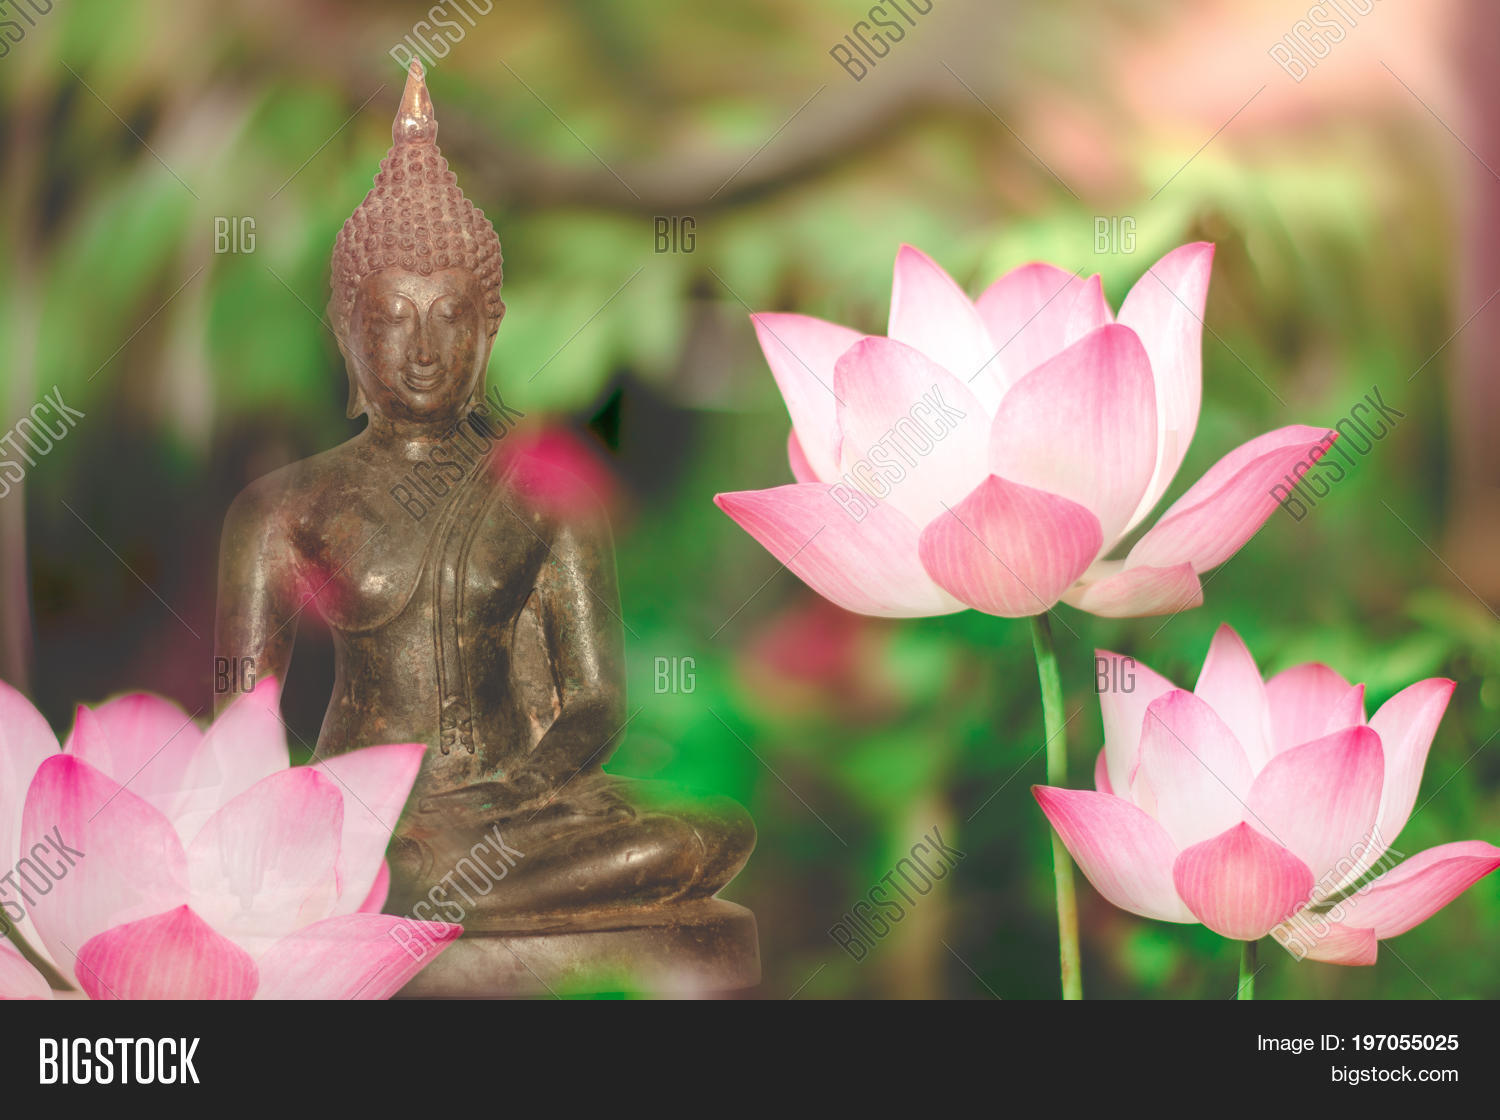 Buddha statue lotus image photo free trial bigstock buddha statue and lotus flower foreground soft light visakha puja day buddhist holiday izmirmasajfo